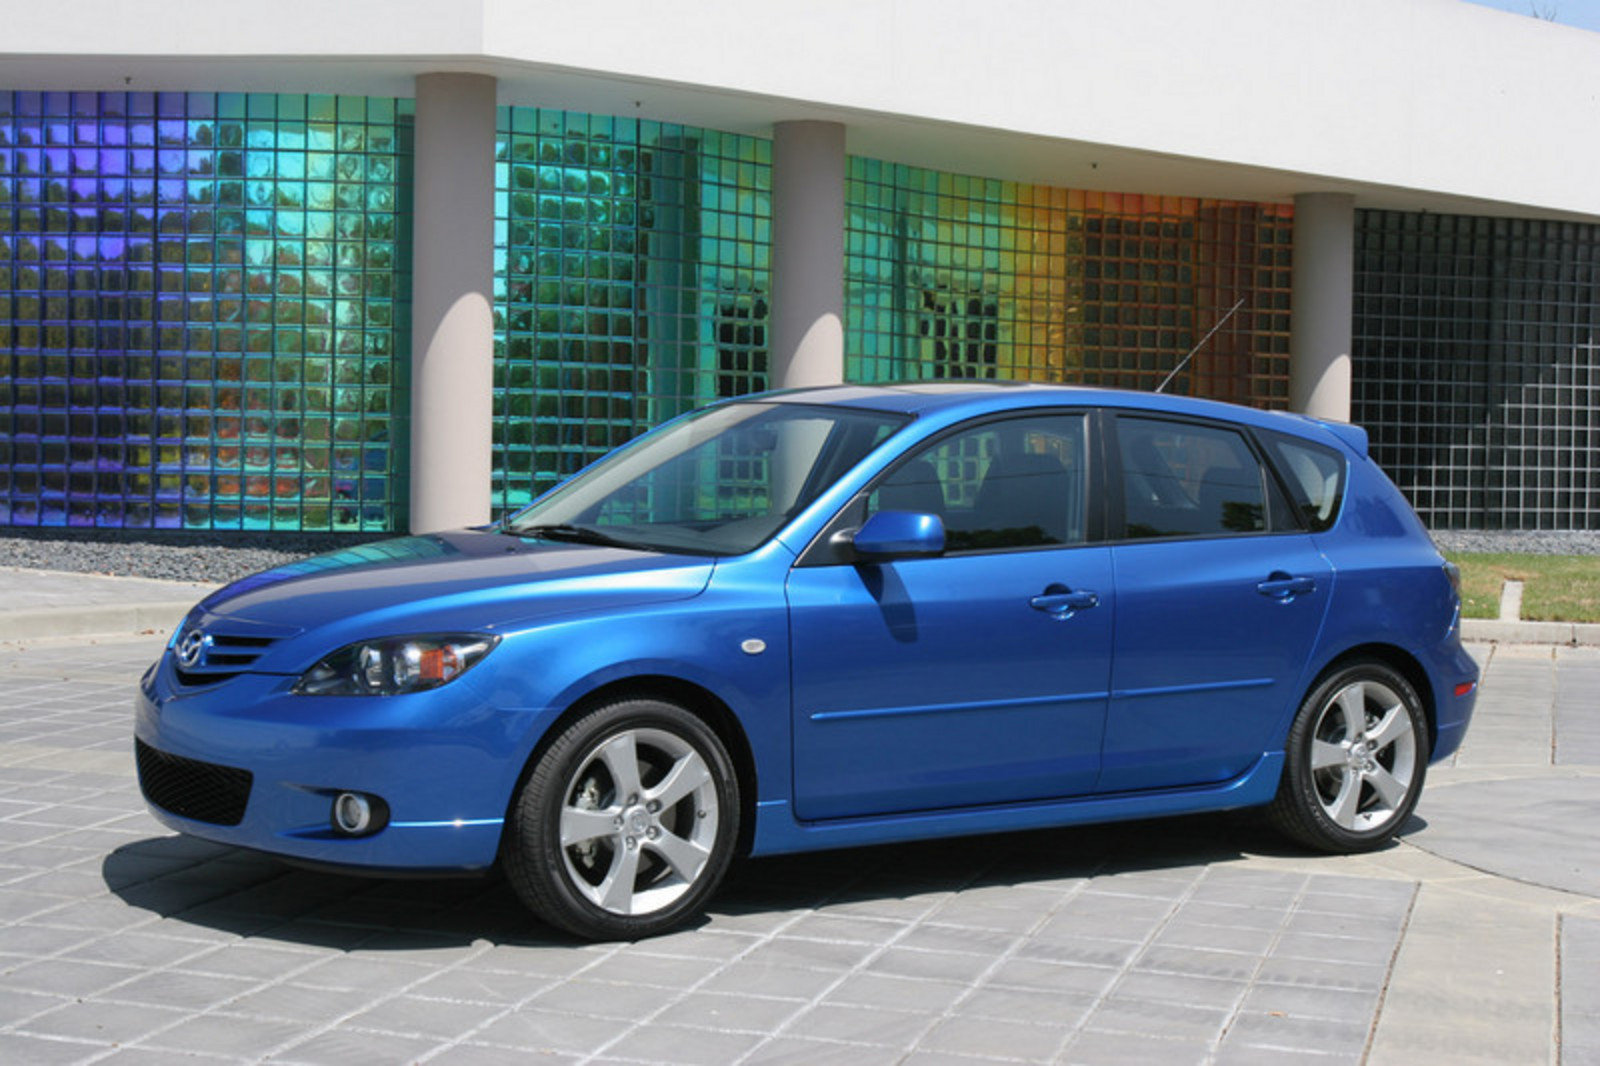 2007 mazda3 mps picture 40405 car review top speed. Black Bedroom Furniture Sets. Home Design Ideas